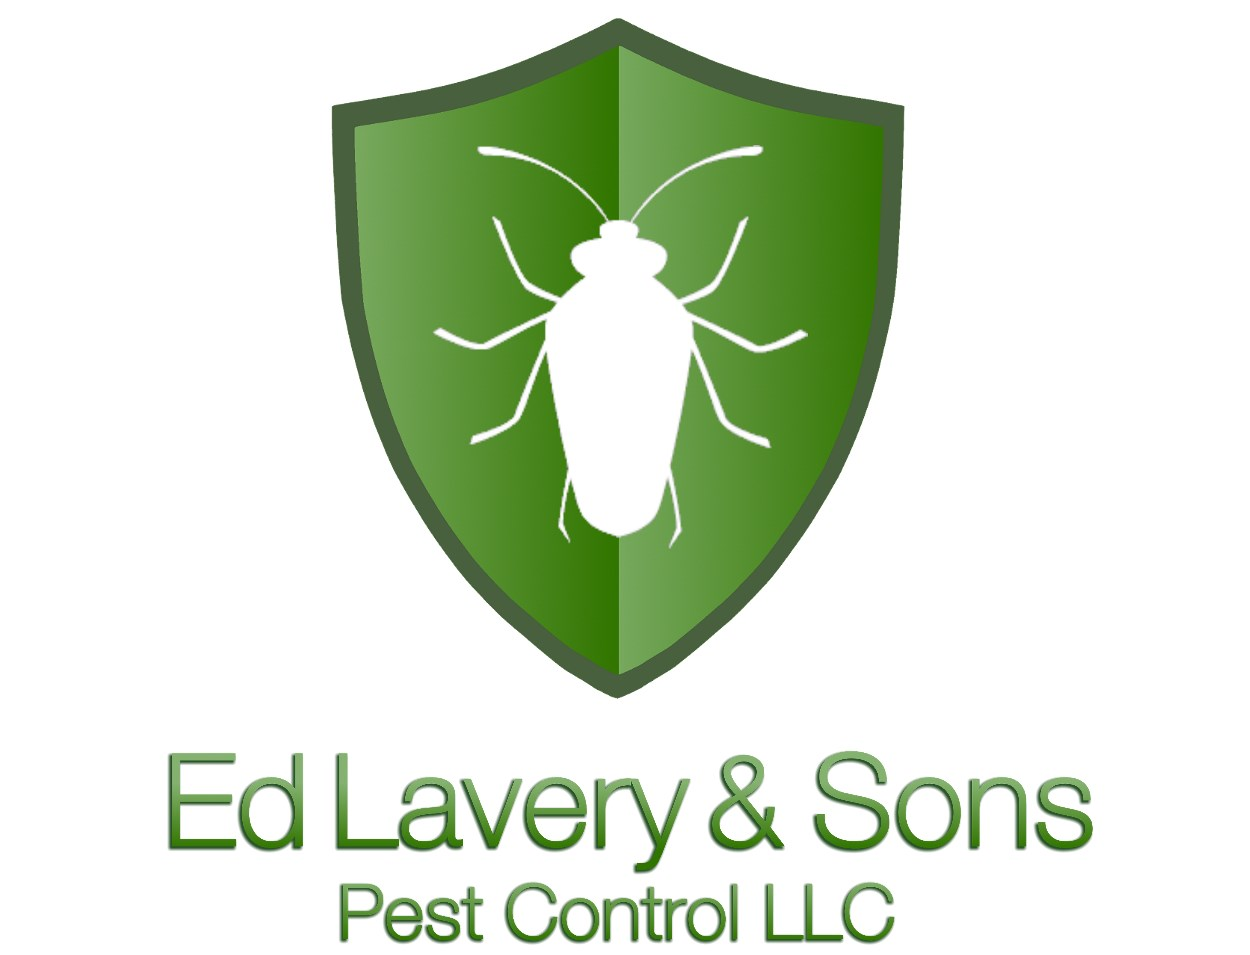 CT Pest Control & Exterminator | Pest Removal of Bugs, Insects & Wildlife